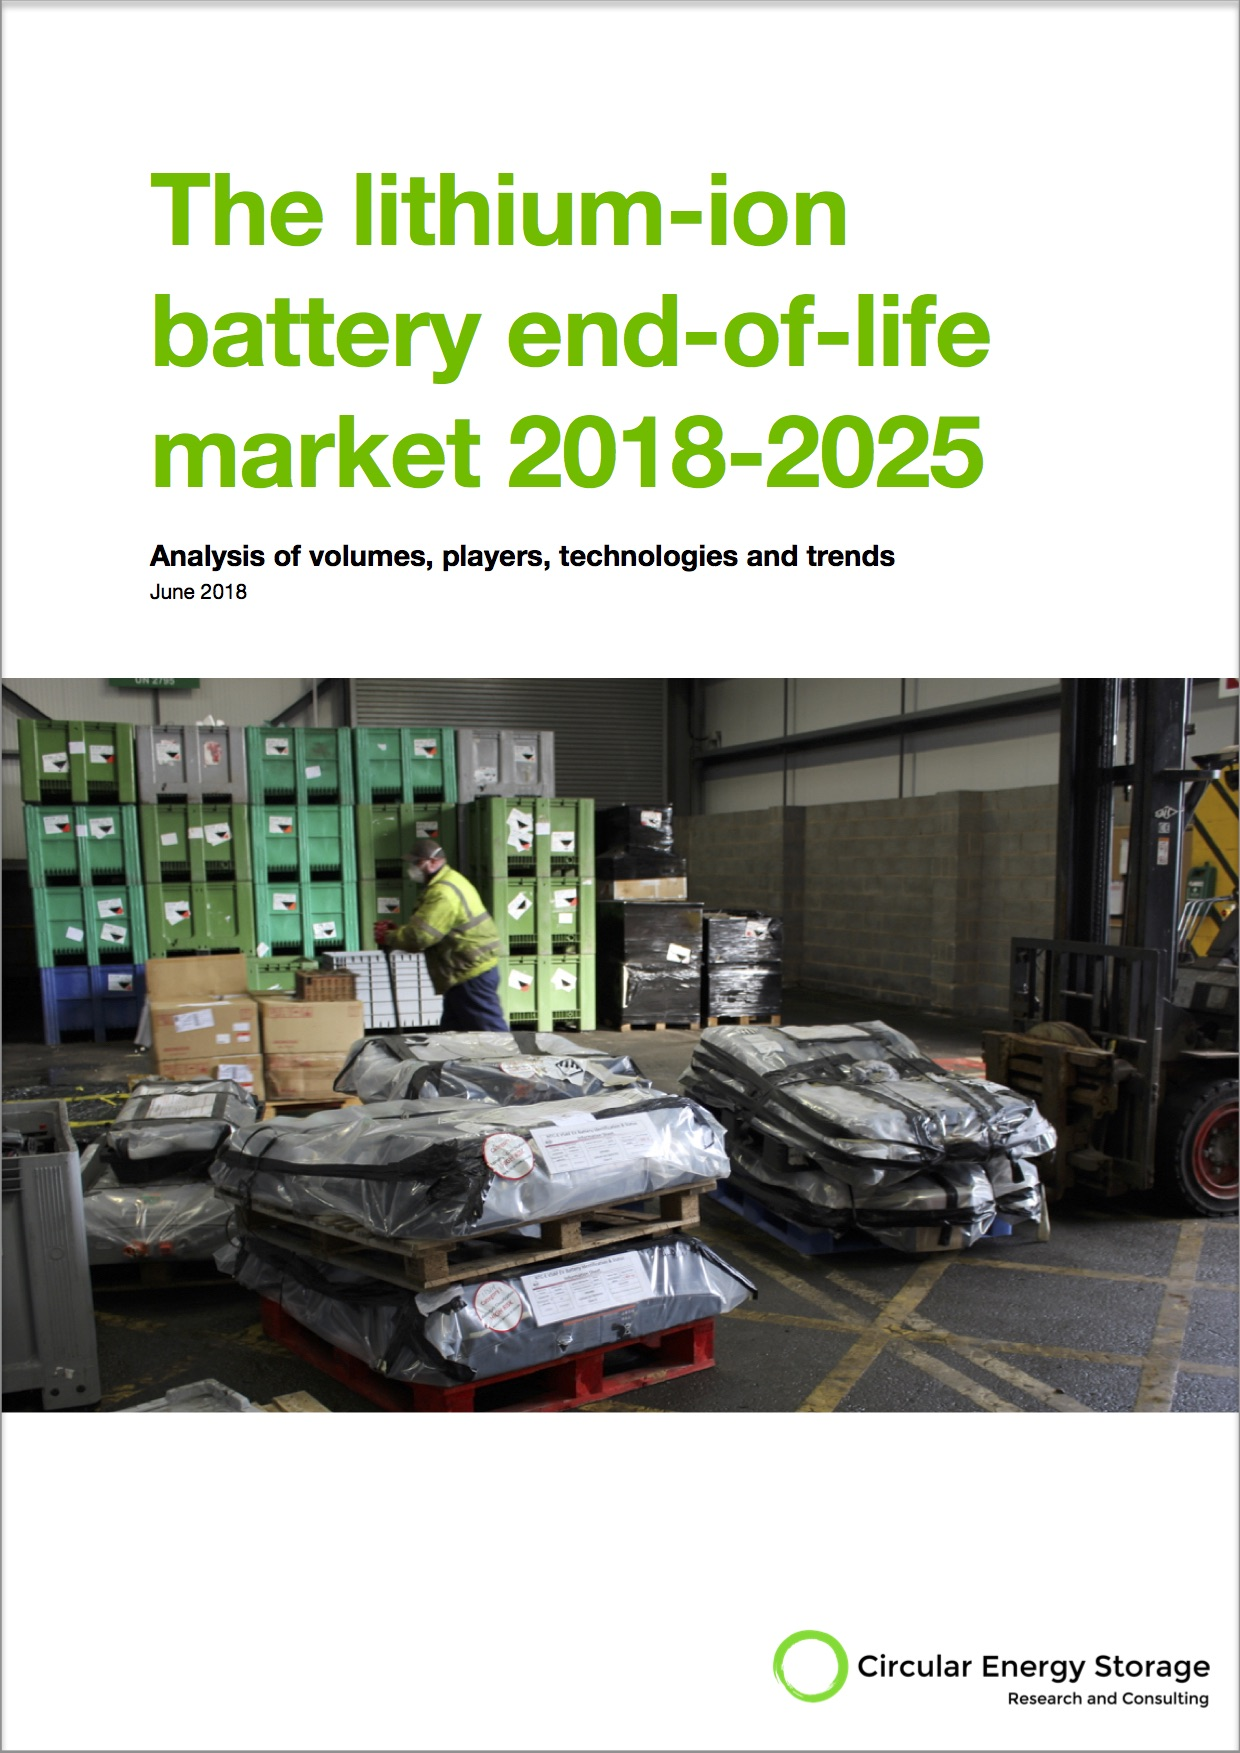 The world's most comprehensive report about the lithium-ion battery end-of-life industry - 127 pages46 charts and tableslists and mentions of over 100 COMPANIES158 REFERENCES AND LISTS OF 155 research PAPERS AND OVER 250 PATENTS